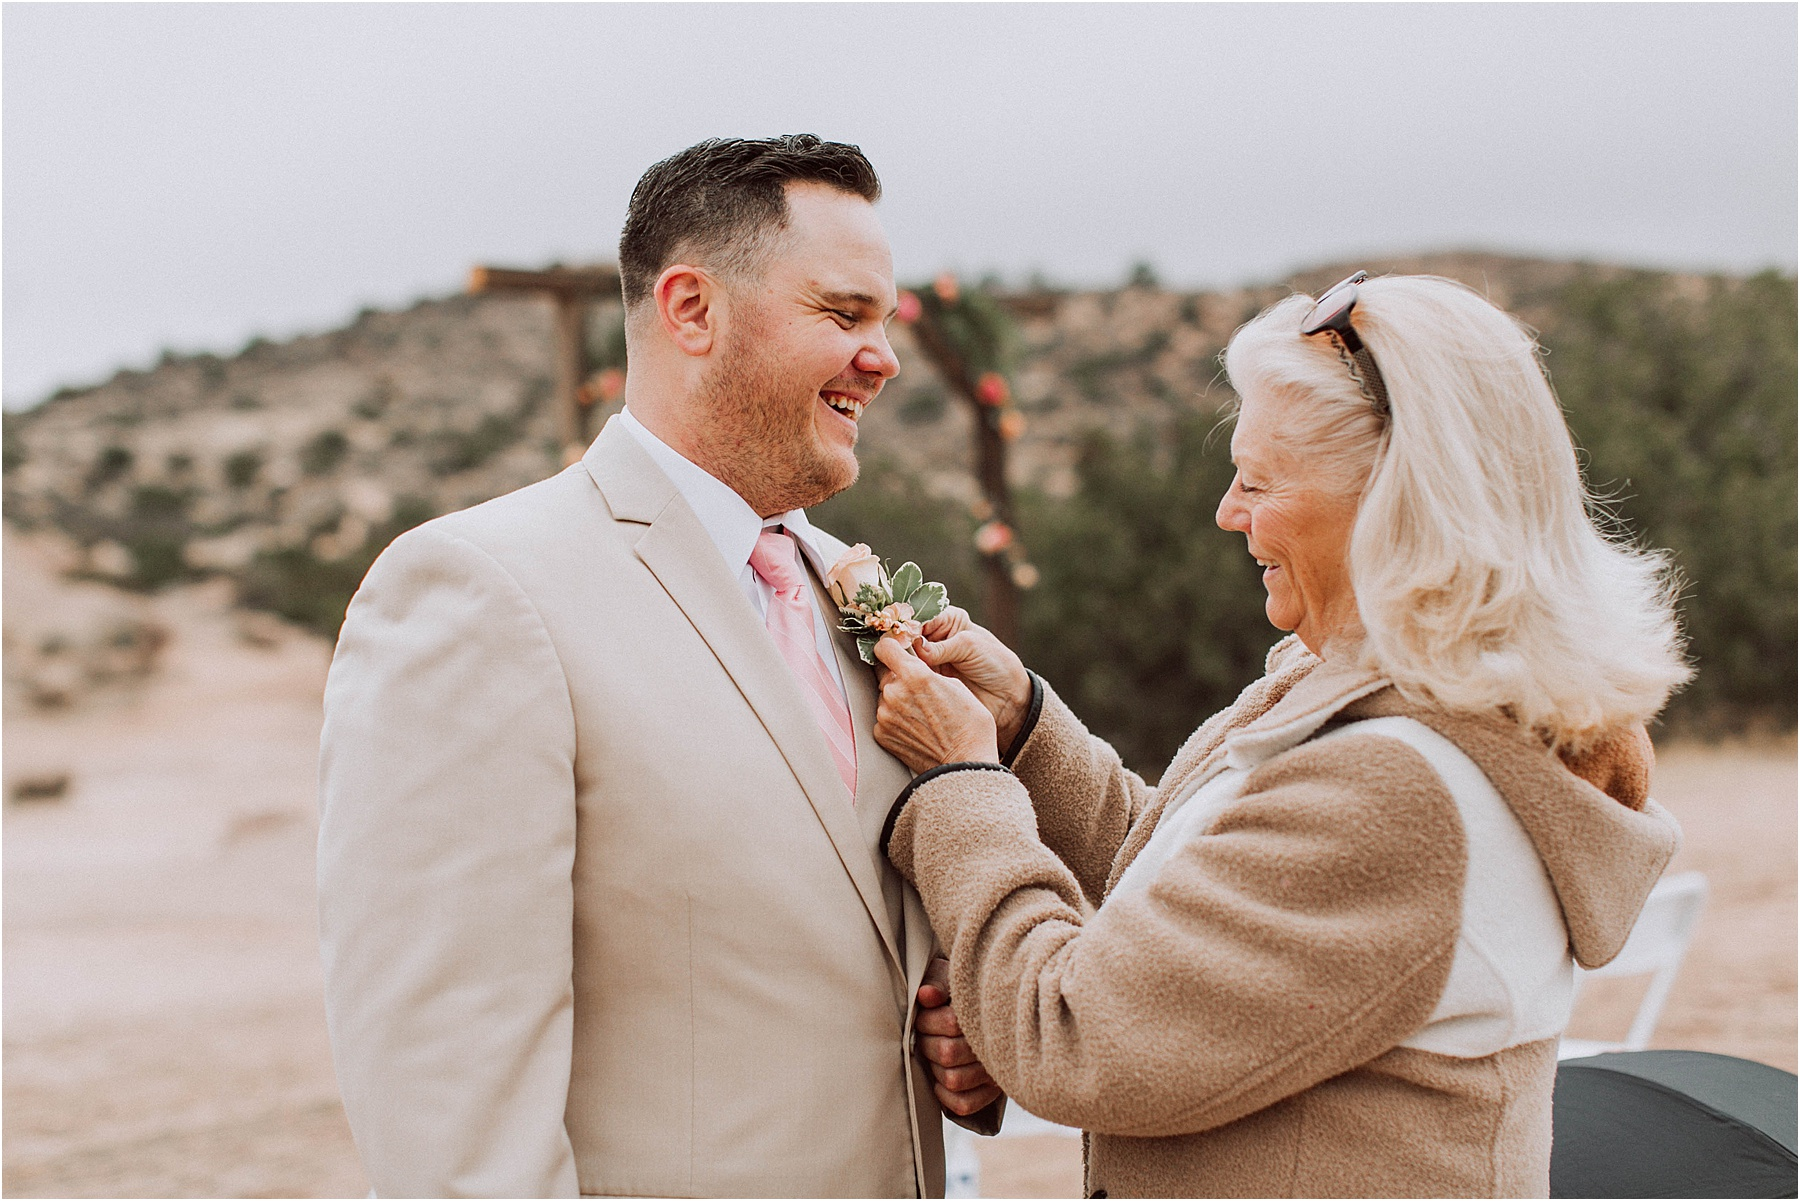 Vasquez Rocks Intimate Wedding & Elopement Photography - Groom's boutonniere